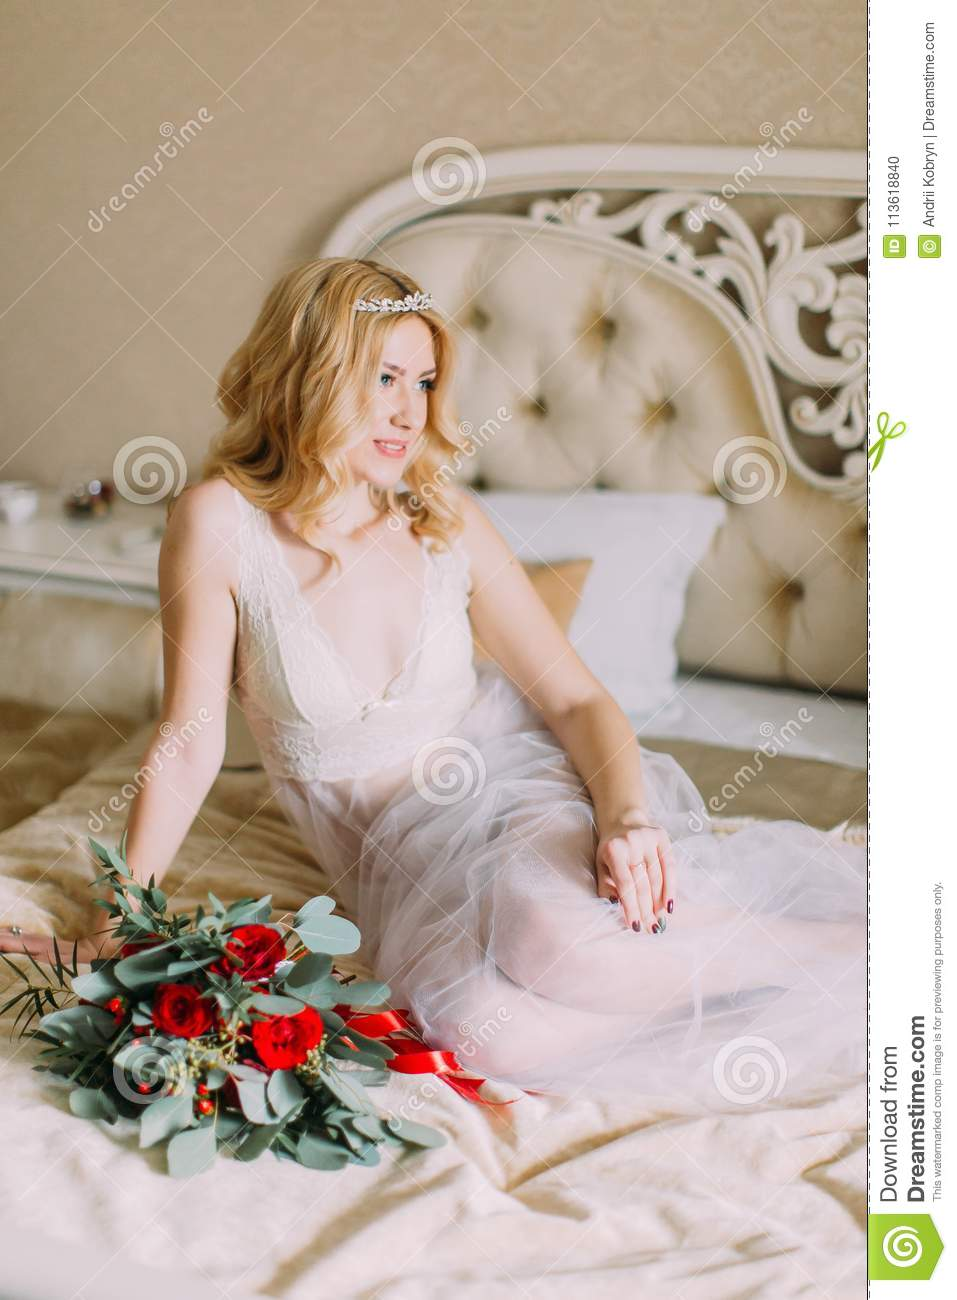 55794ae2707 Portrait of blonde bride in white underwear sitting on bed. Bouquet of red  roses.